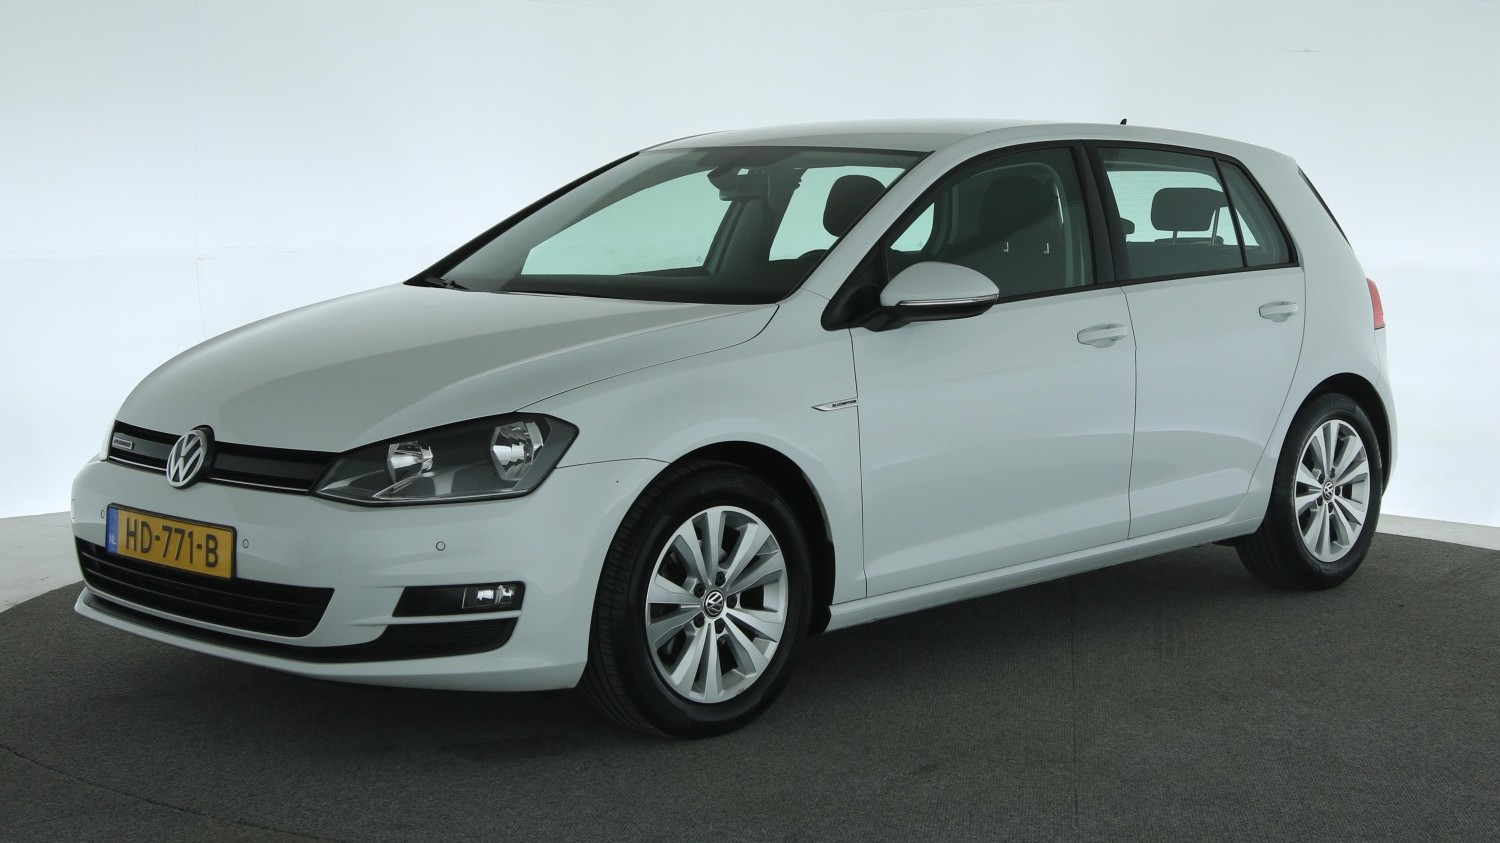 Volkswagen Golf Hatchback 2015 HD-771-B 1